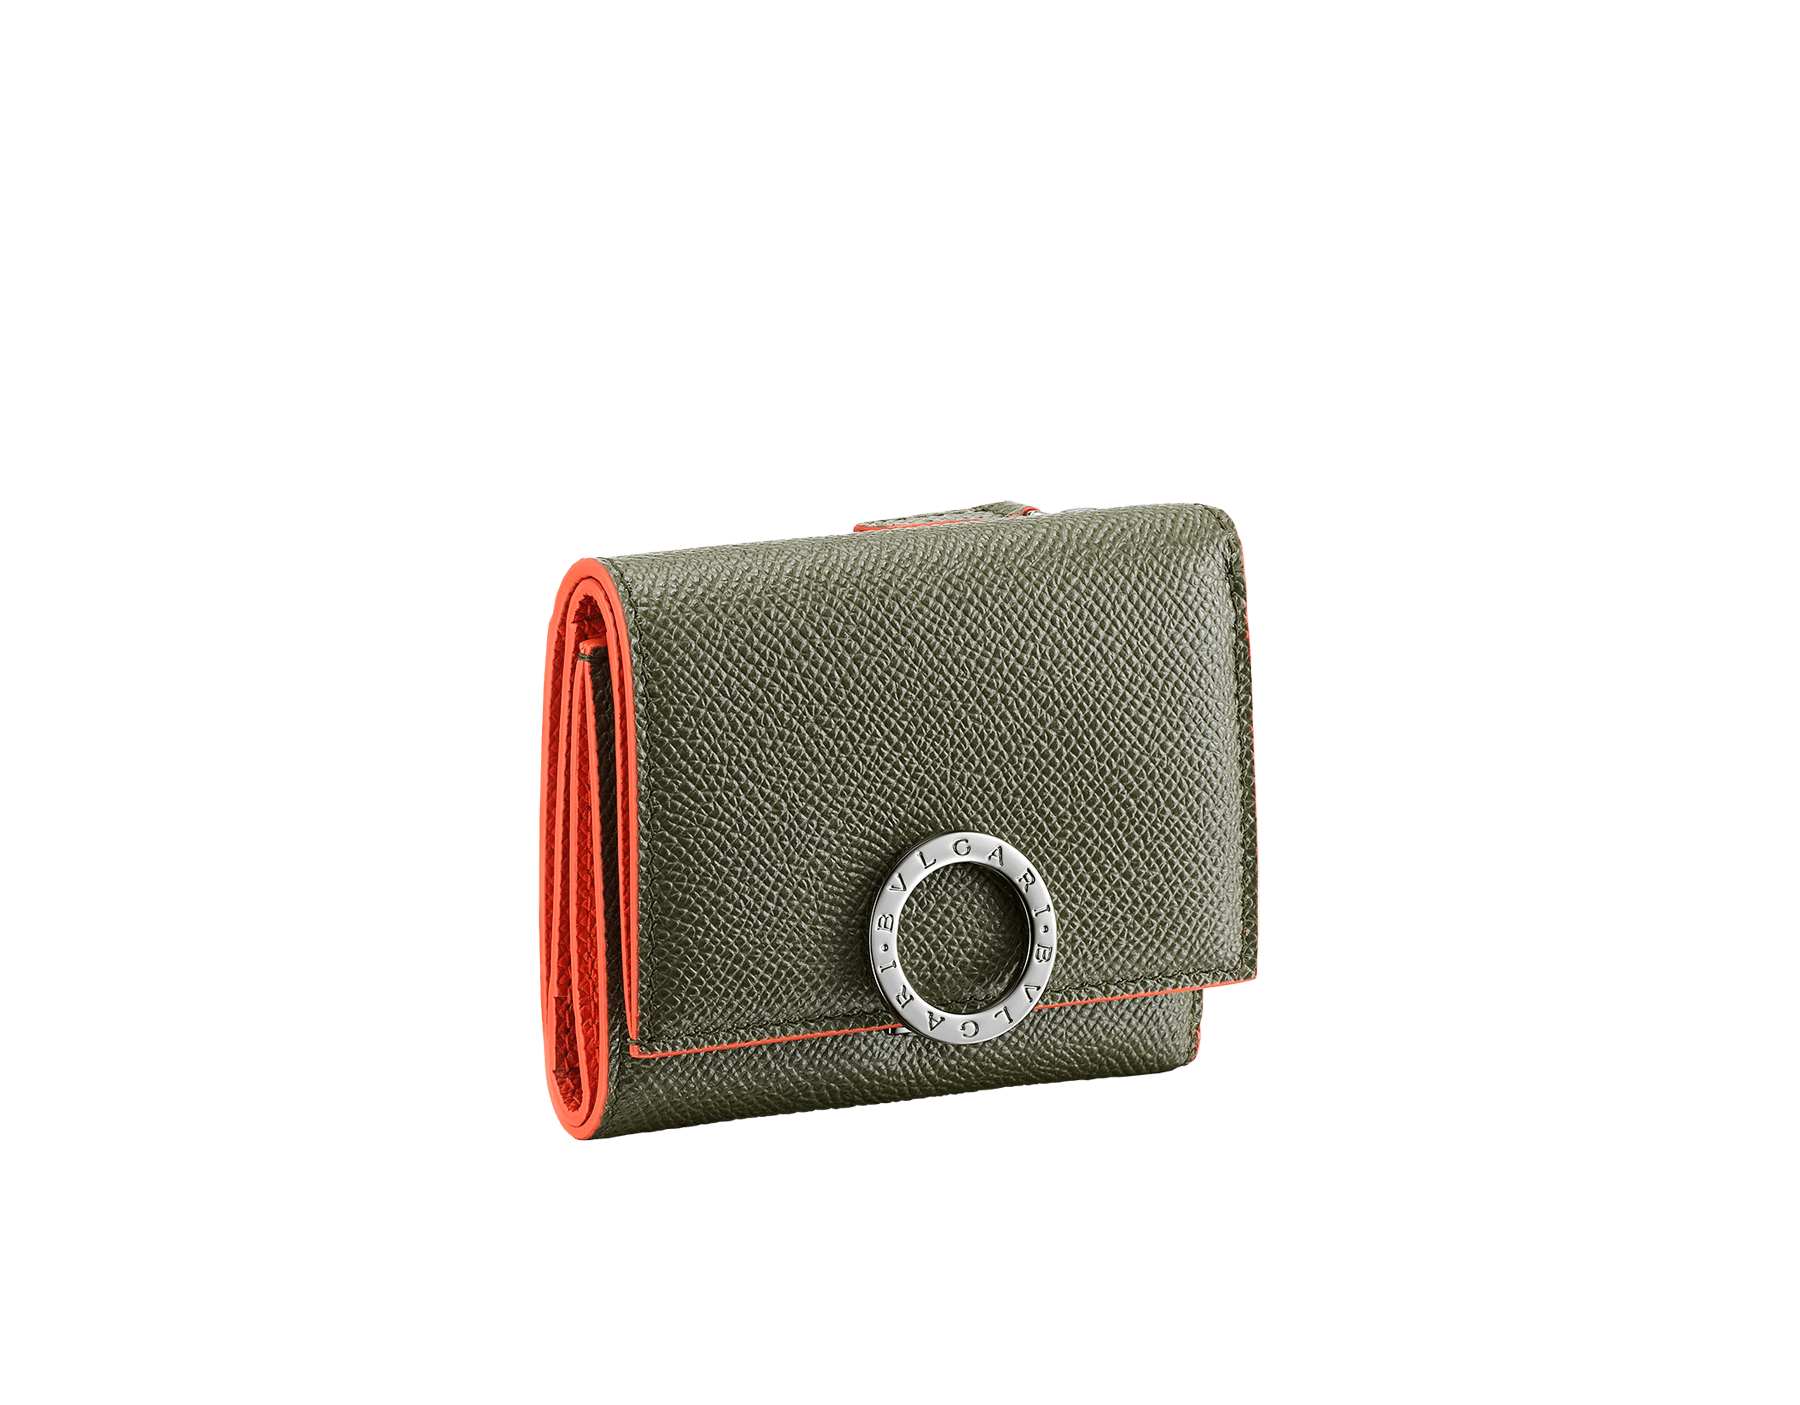 BVLGARI BVLGARI slim compact wallet in denim sapphire and daisy topaz grain calf leather. Iconic logo closure clip in palladium-plated brass. BCM-SLIMCOMPACTb image 1